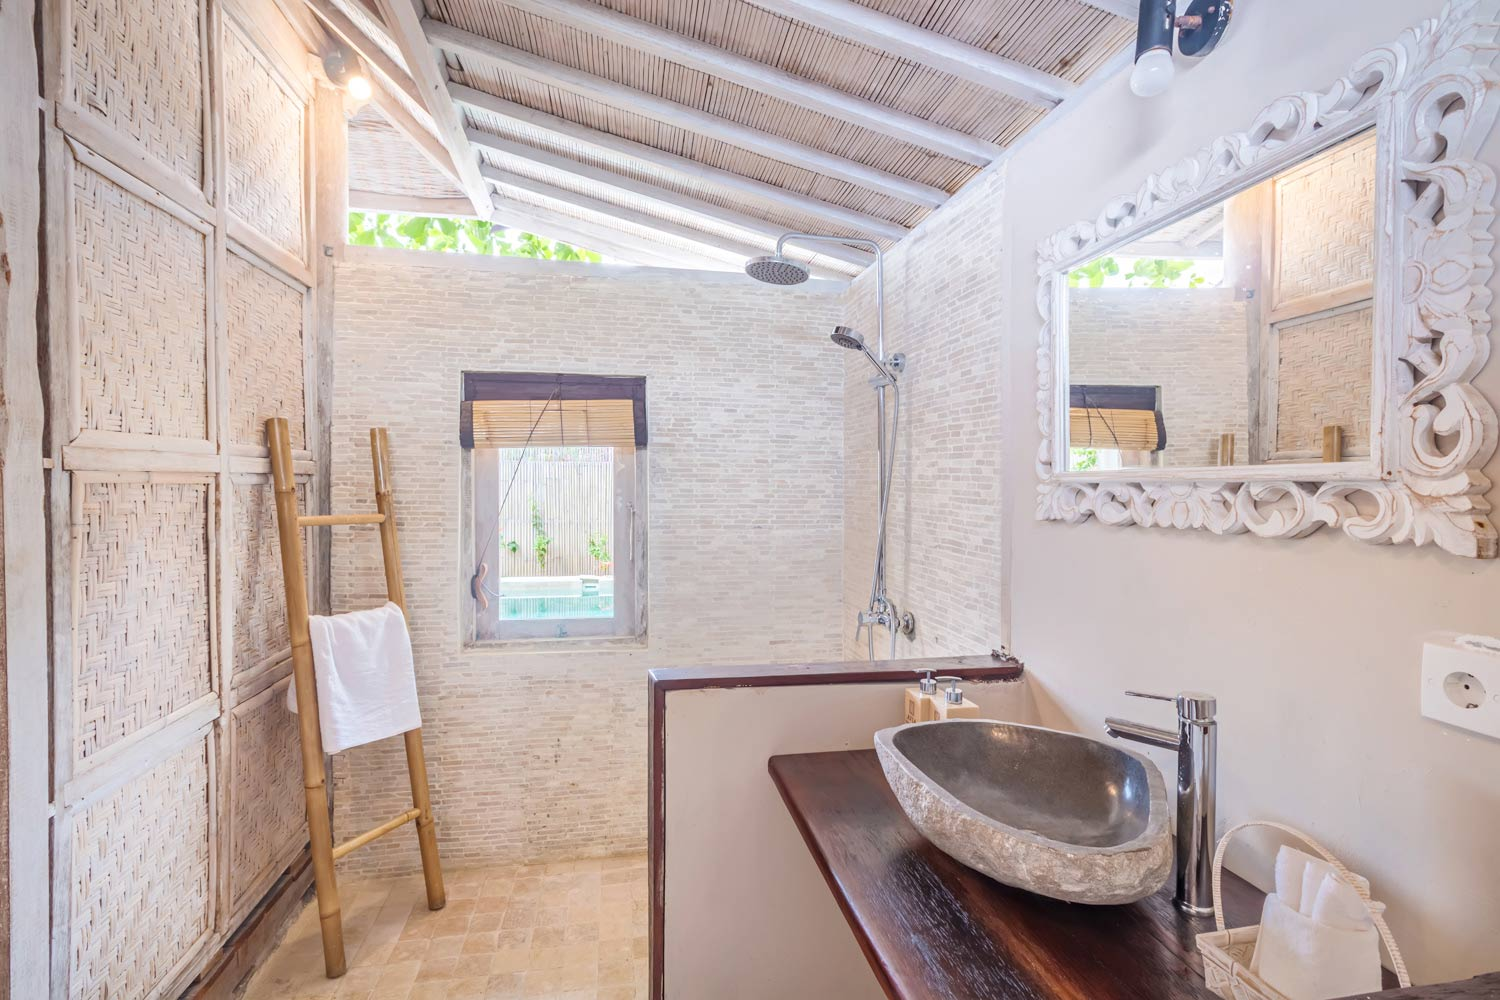 Bathroom - Gili Meno - Avia Villa Resort